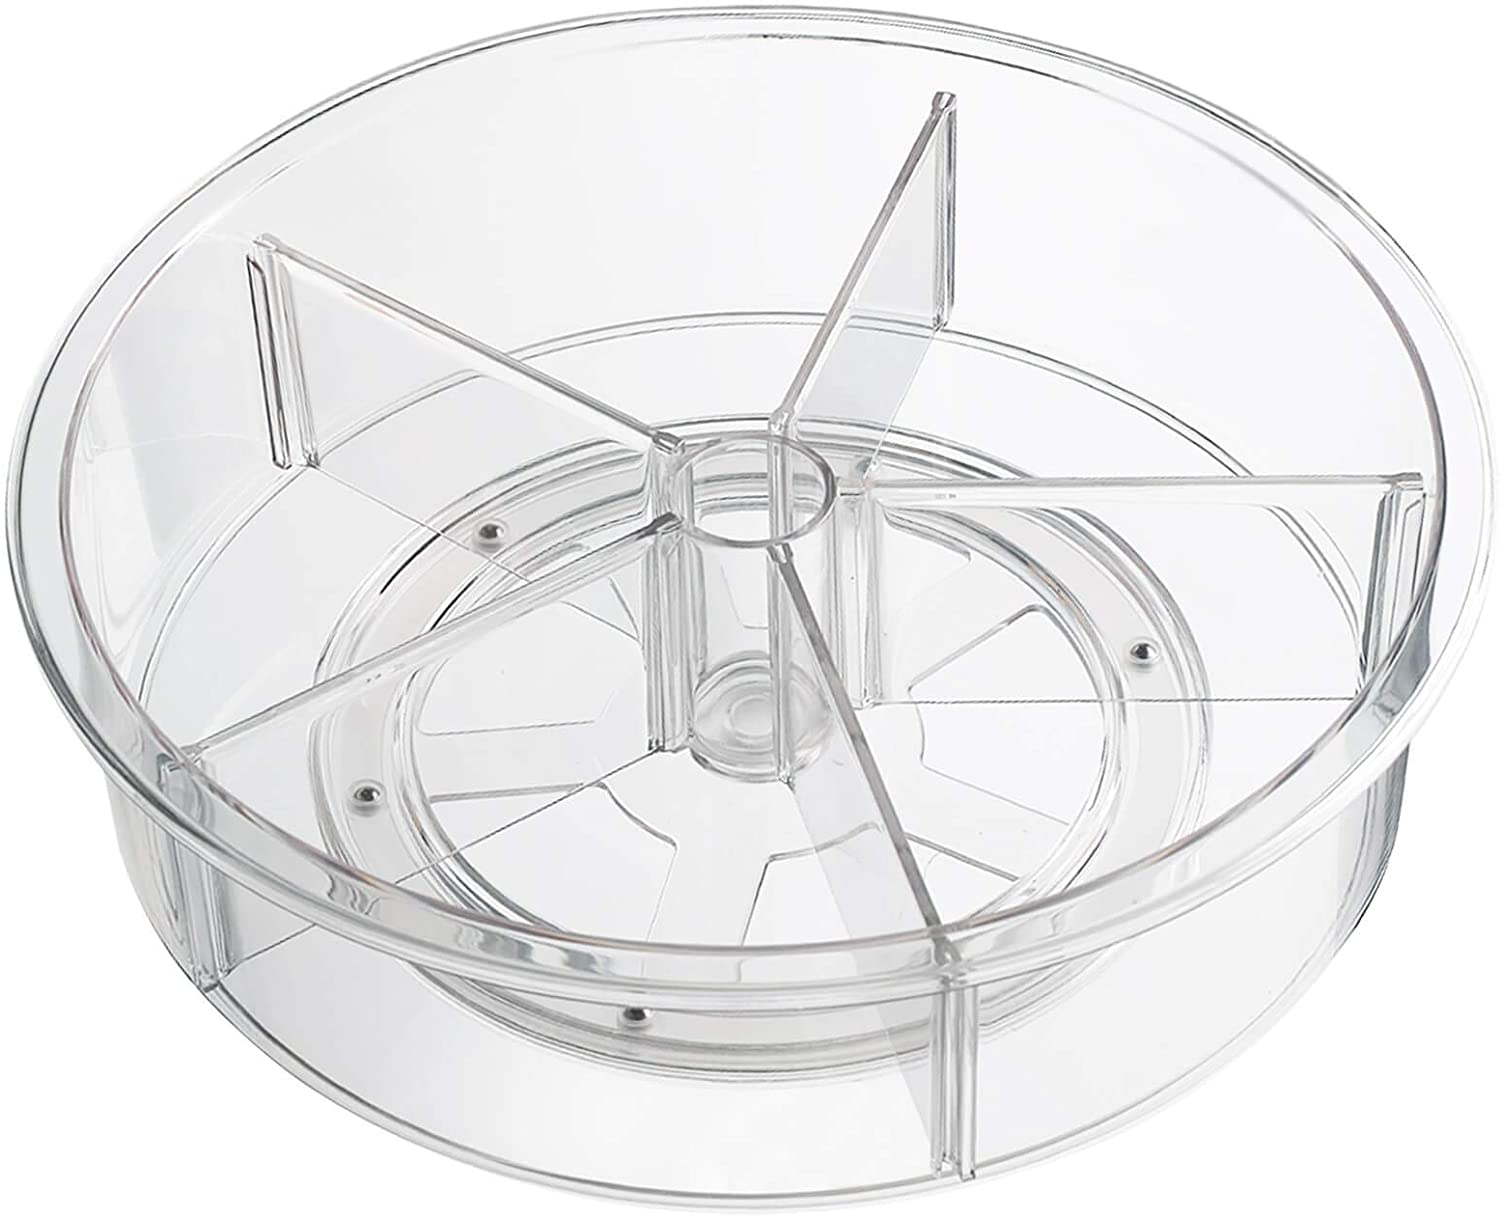 FIRJOY Lazy Susan Turntable, Pantry Cabinet Organizer with Dividers, 3